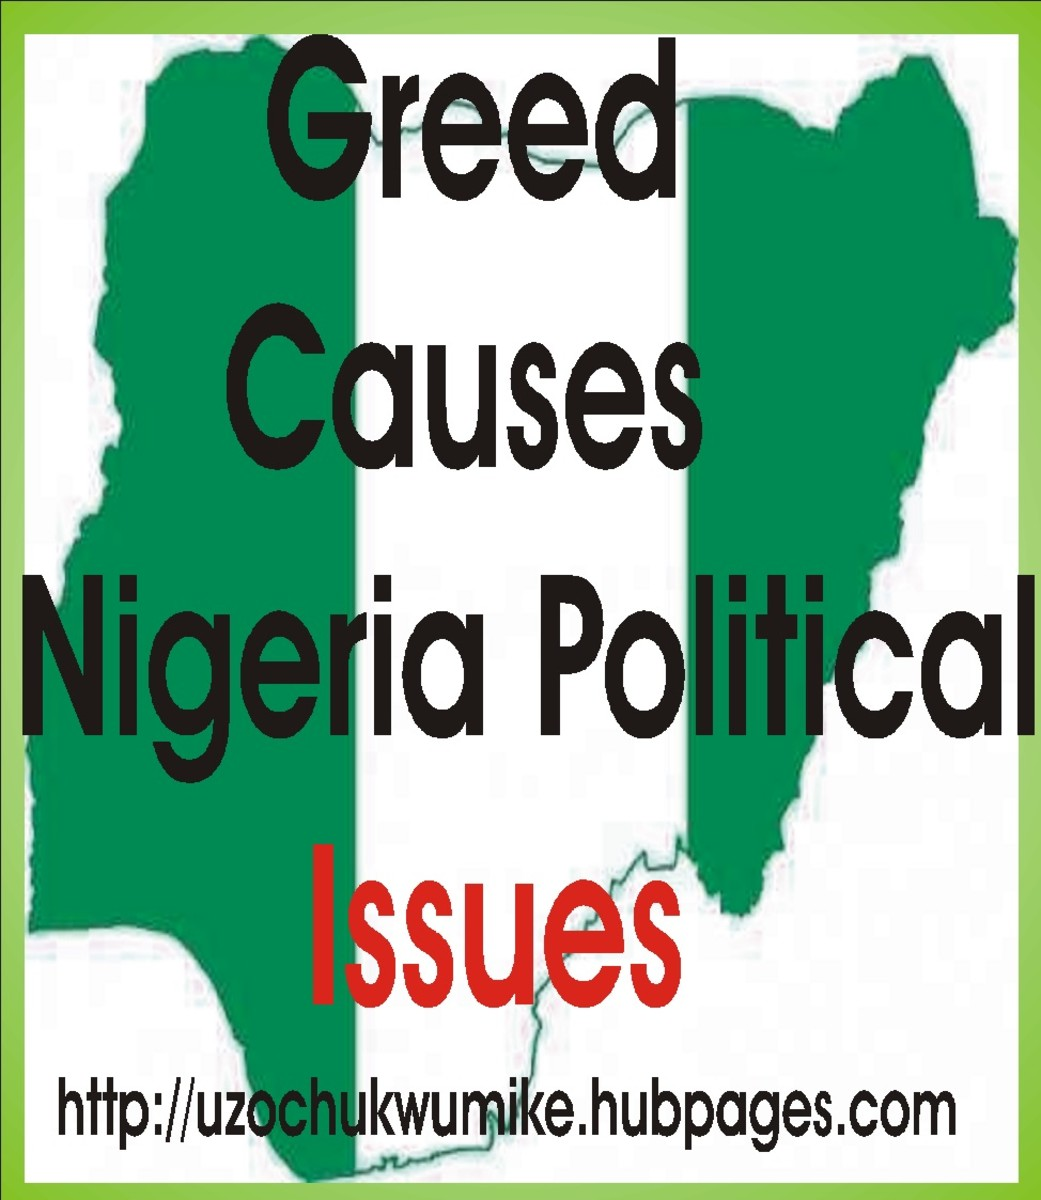 Greed as a cause of Nigeria political issues. Greed has caused lots of problems in Nigeria.